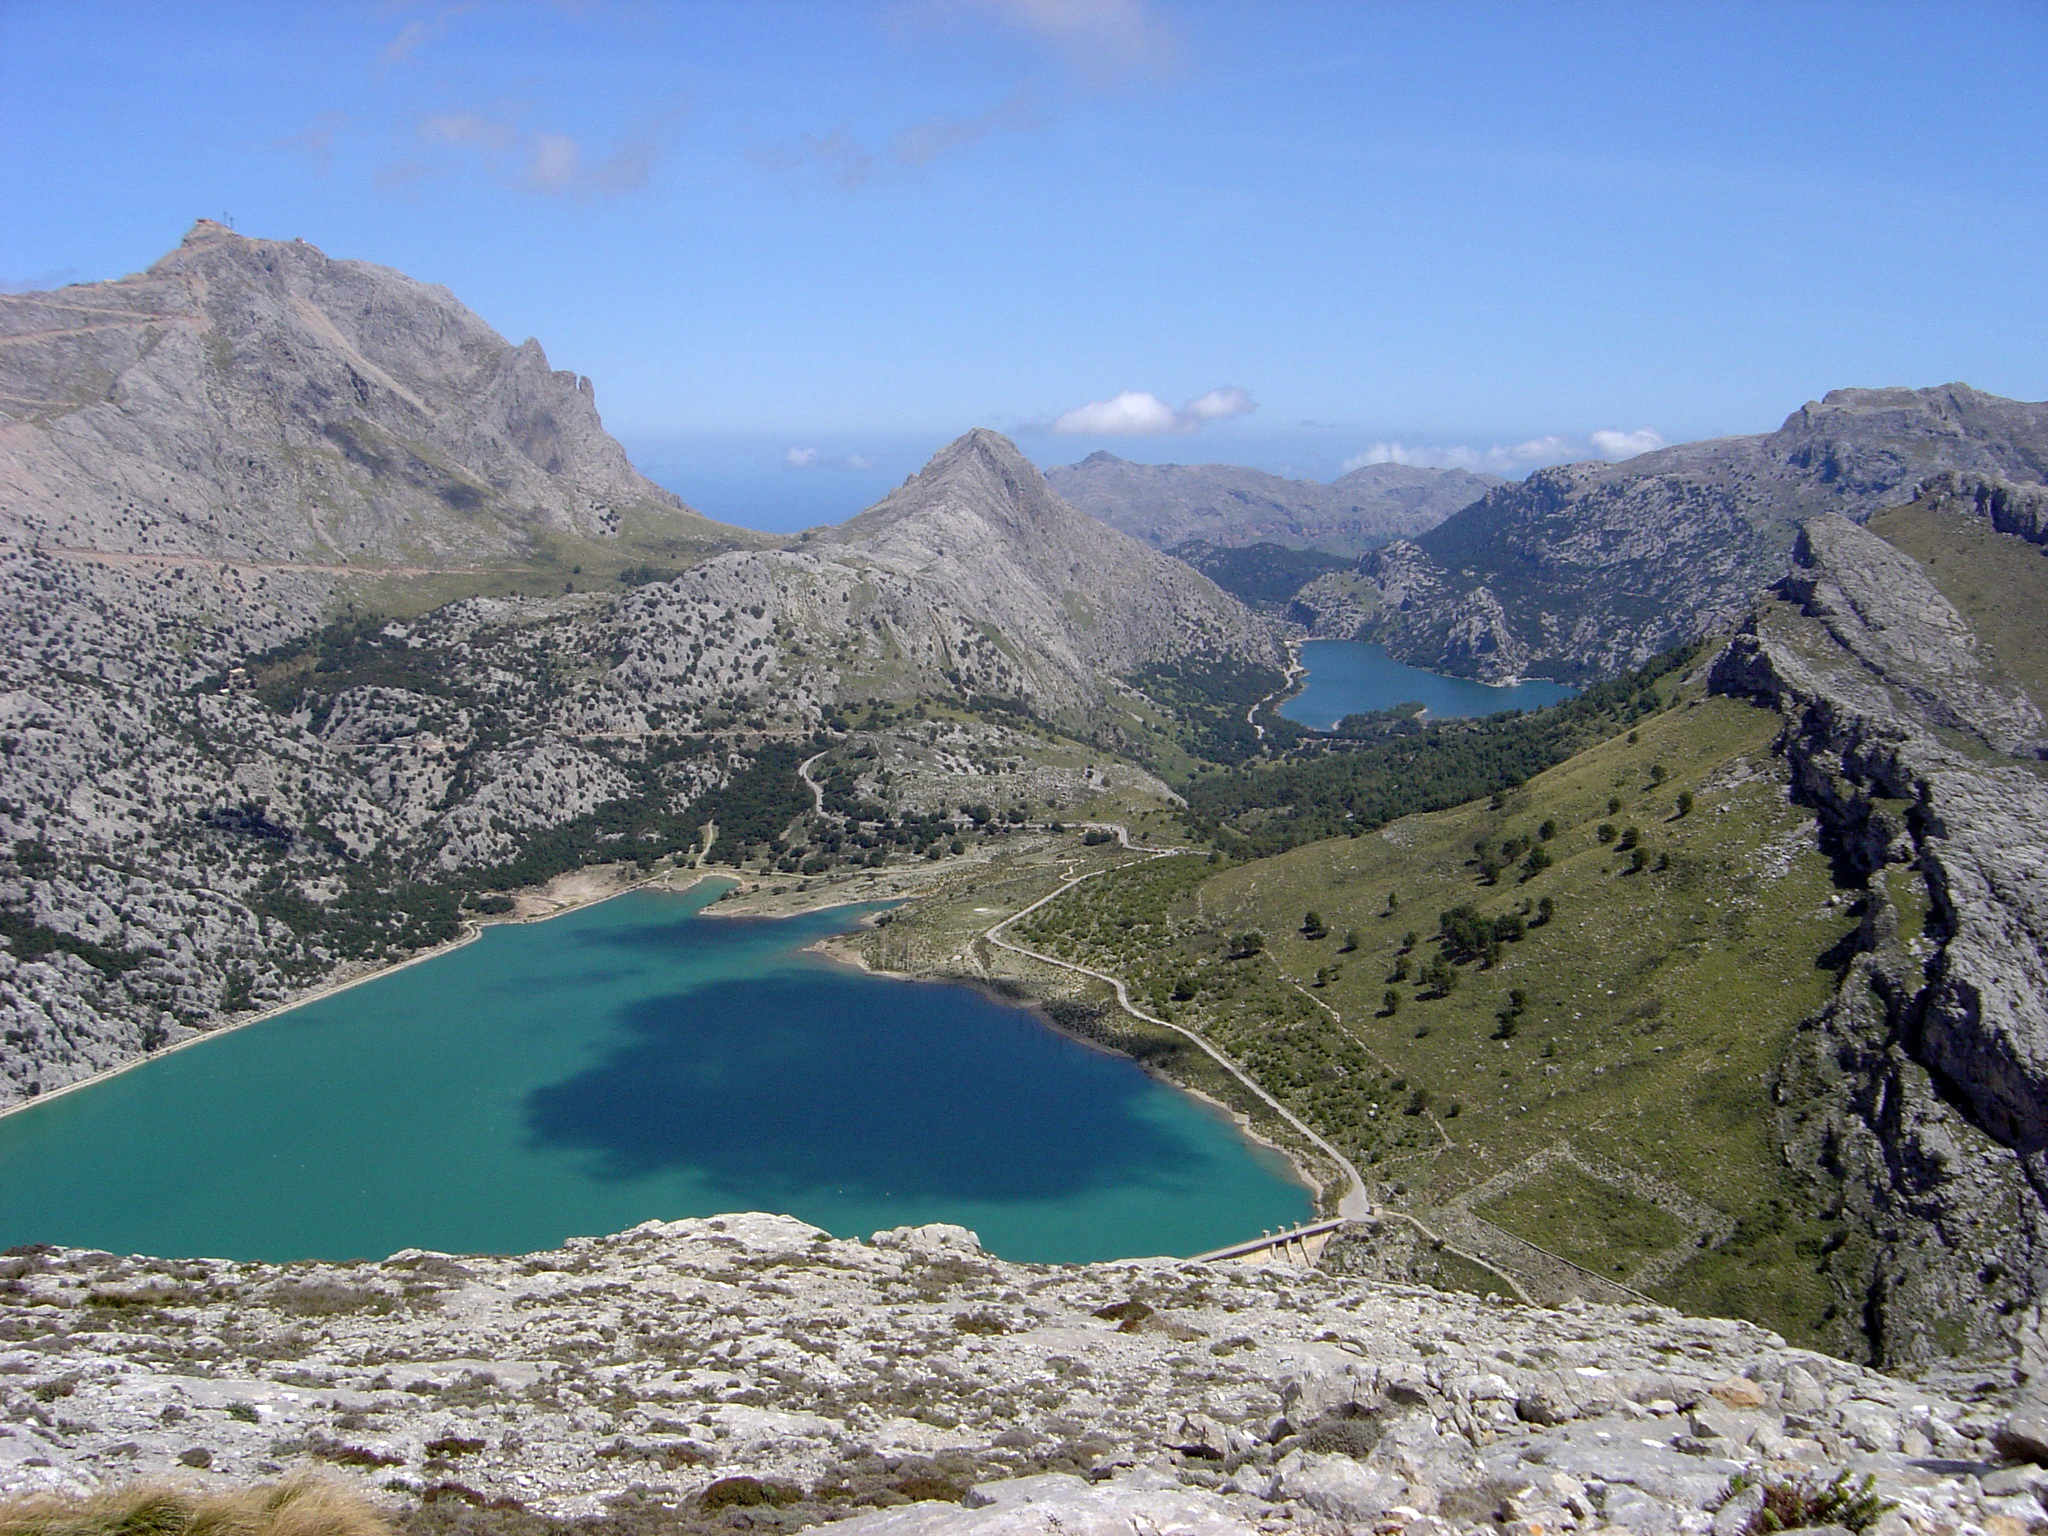 The Serra de Tramuntana has many gasp-inducing vistas in store for you, such as this one...